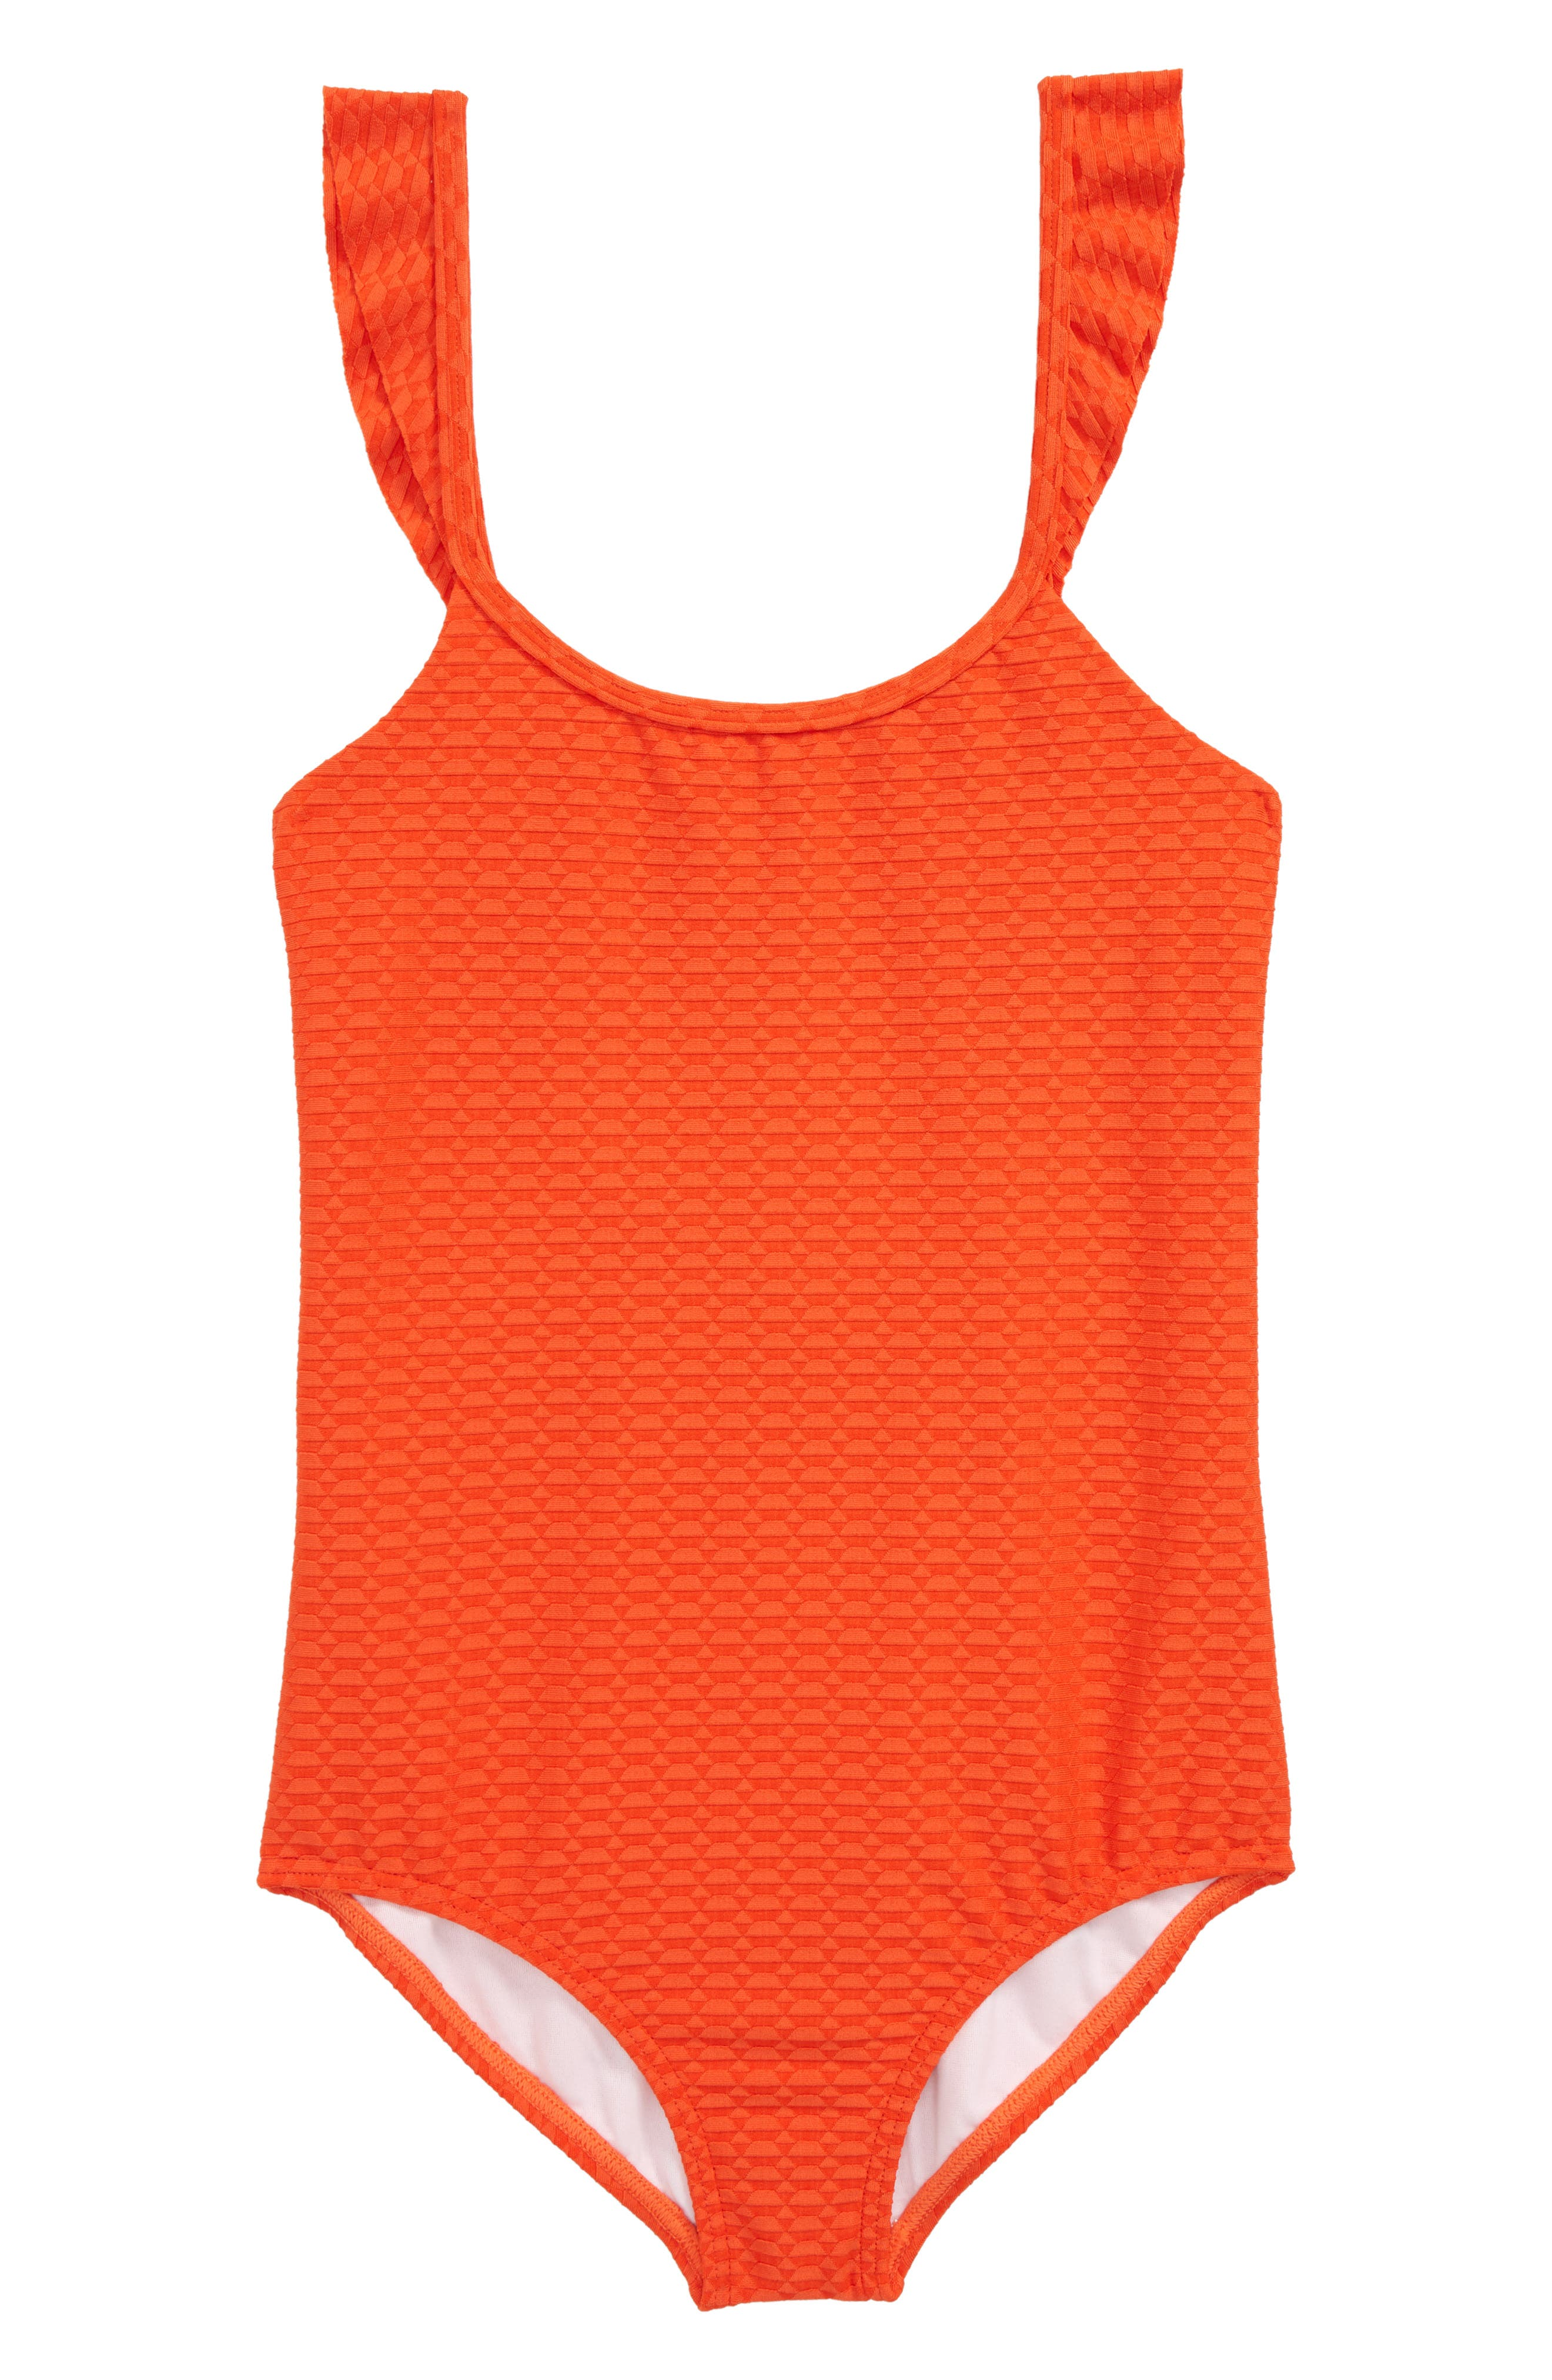 Making Shapes One-Piece Swimsuit,                         Main,                         color, Poppy